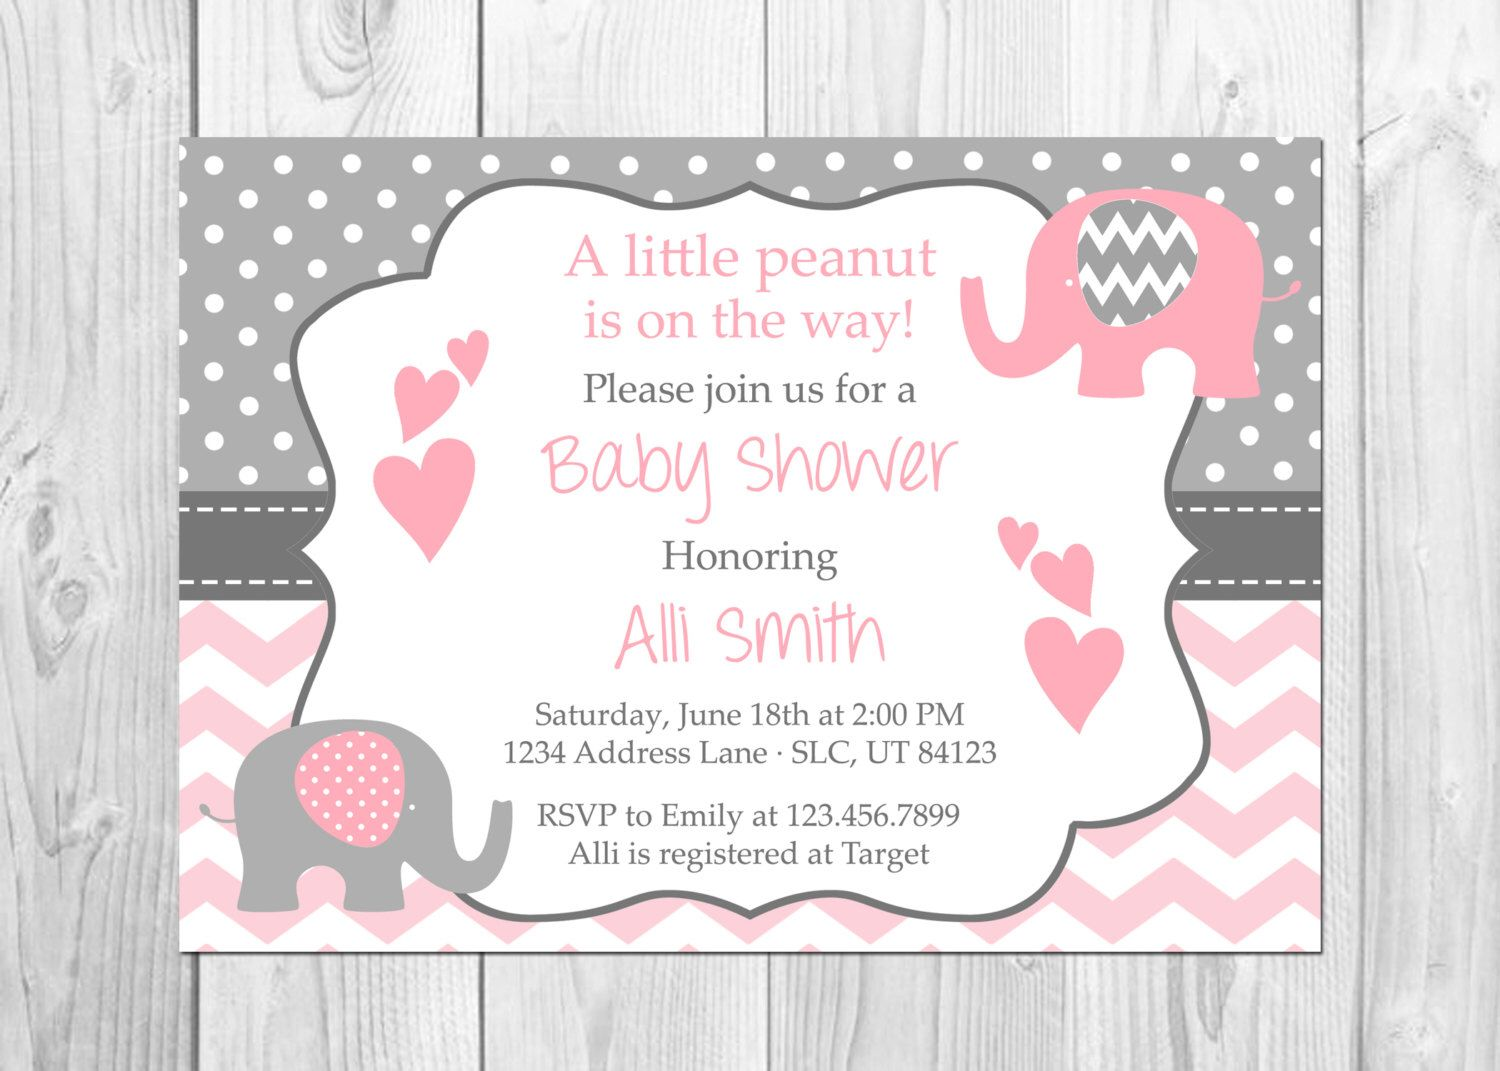 Elephant baby shower invitation its a girl elephant chevron pink and grey elephant baby shower invitation its a girl elephant chevron pink little peanut baby shower invitation girl baby shower by filmwisefo